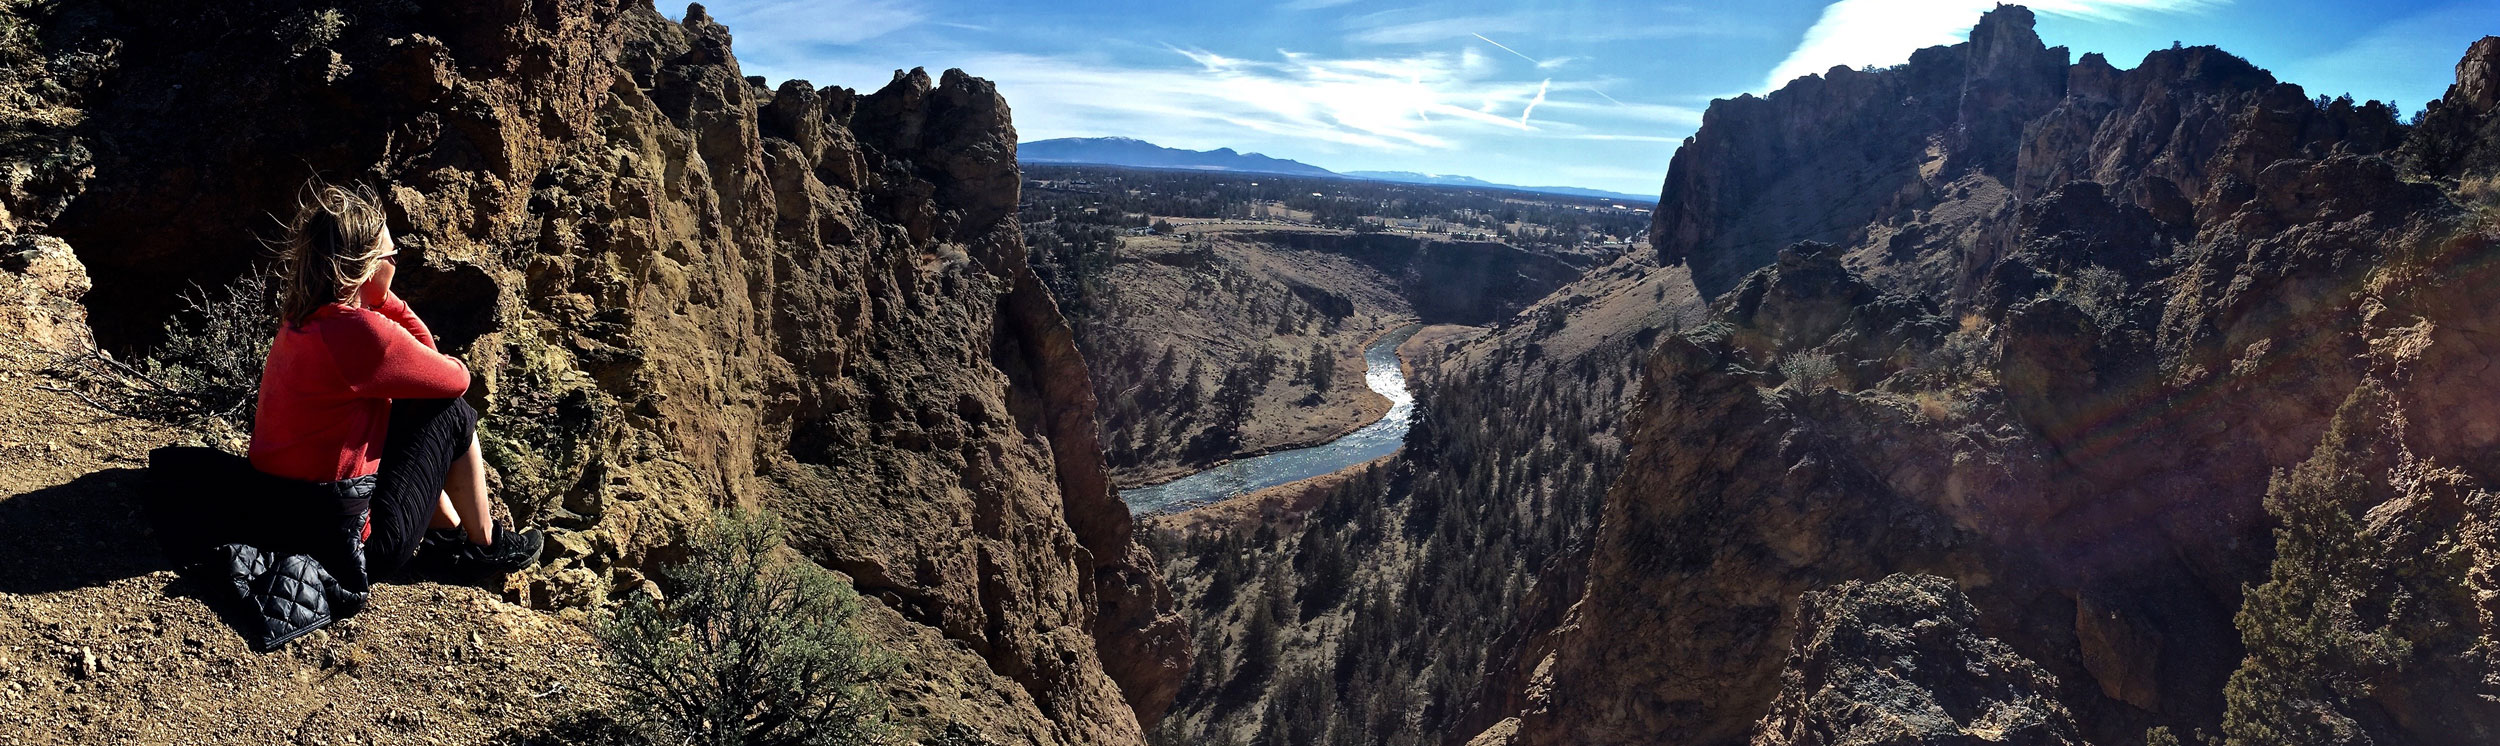 SUMMIT loop (7.3 miles) - See the whole park starting with the Crooked River, Monkey Face, and then up a series of switchbacks to amazing views from the back side of the Monument area and then down a road and back along the river to the bridge again.